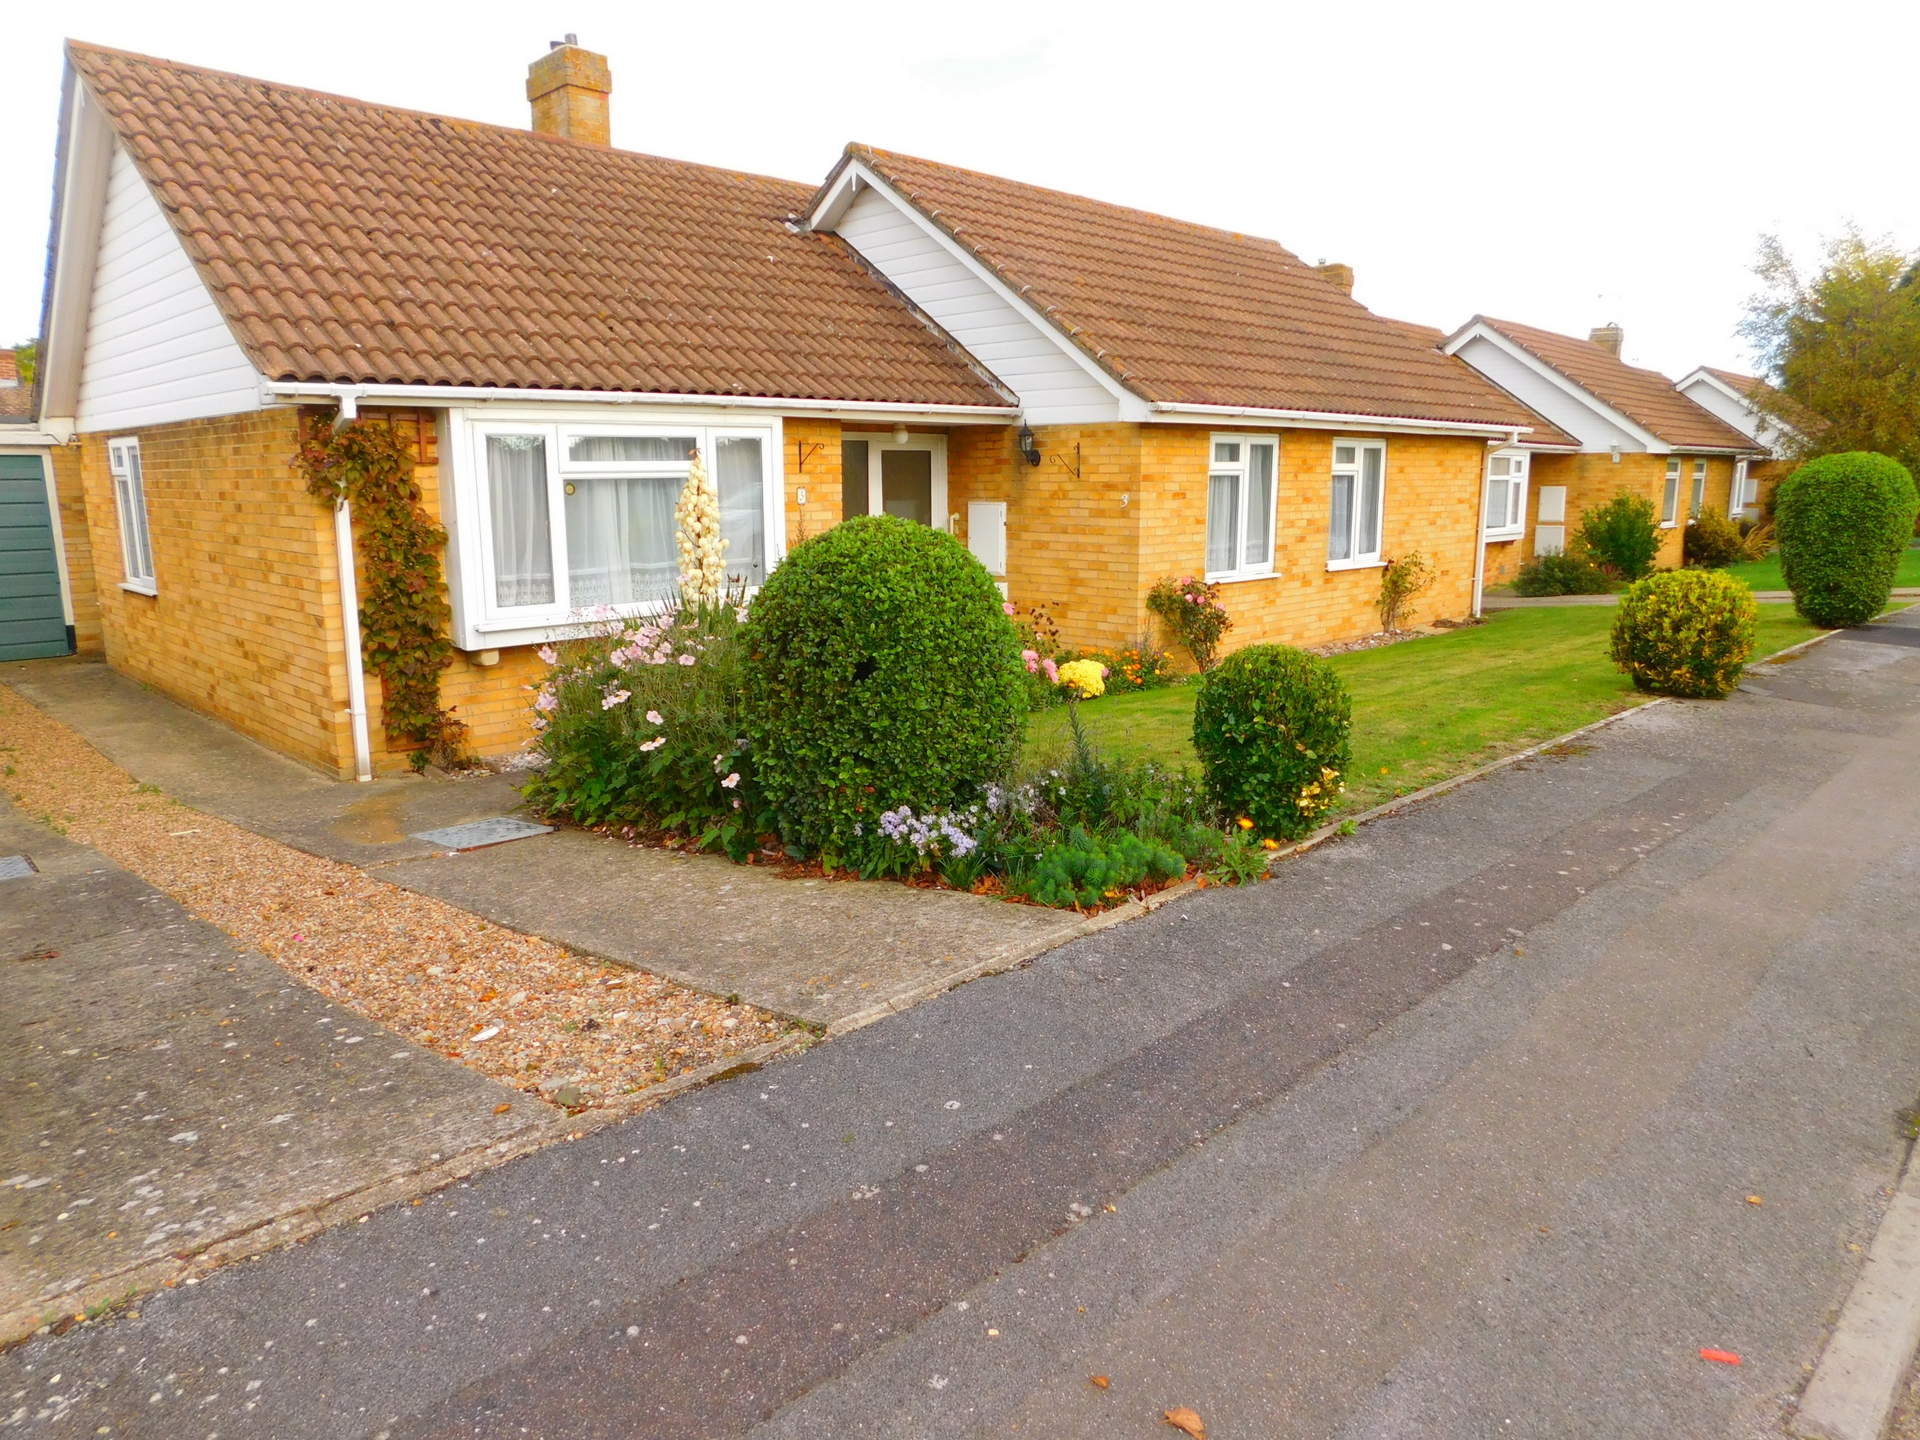 3 bed bungalow to rent in Cheesmans Close, Minster, CT12  - Property Image 2